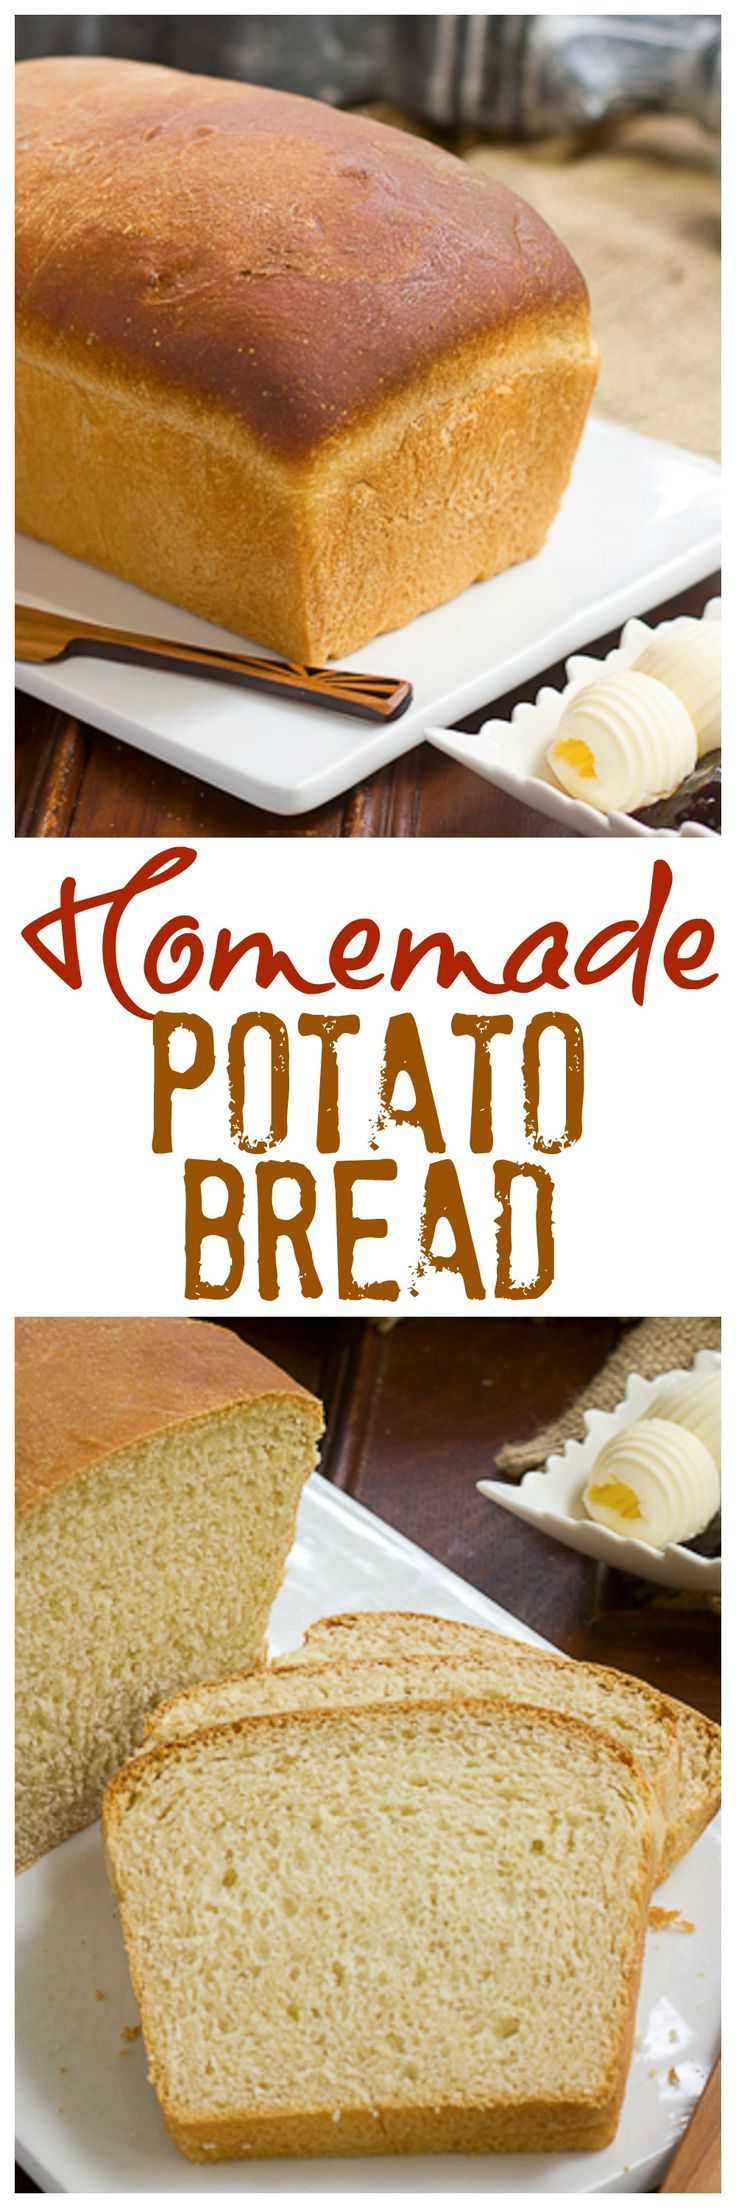 Potato Bread | The ultimate sandwich bread! @lizzydo